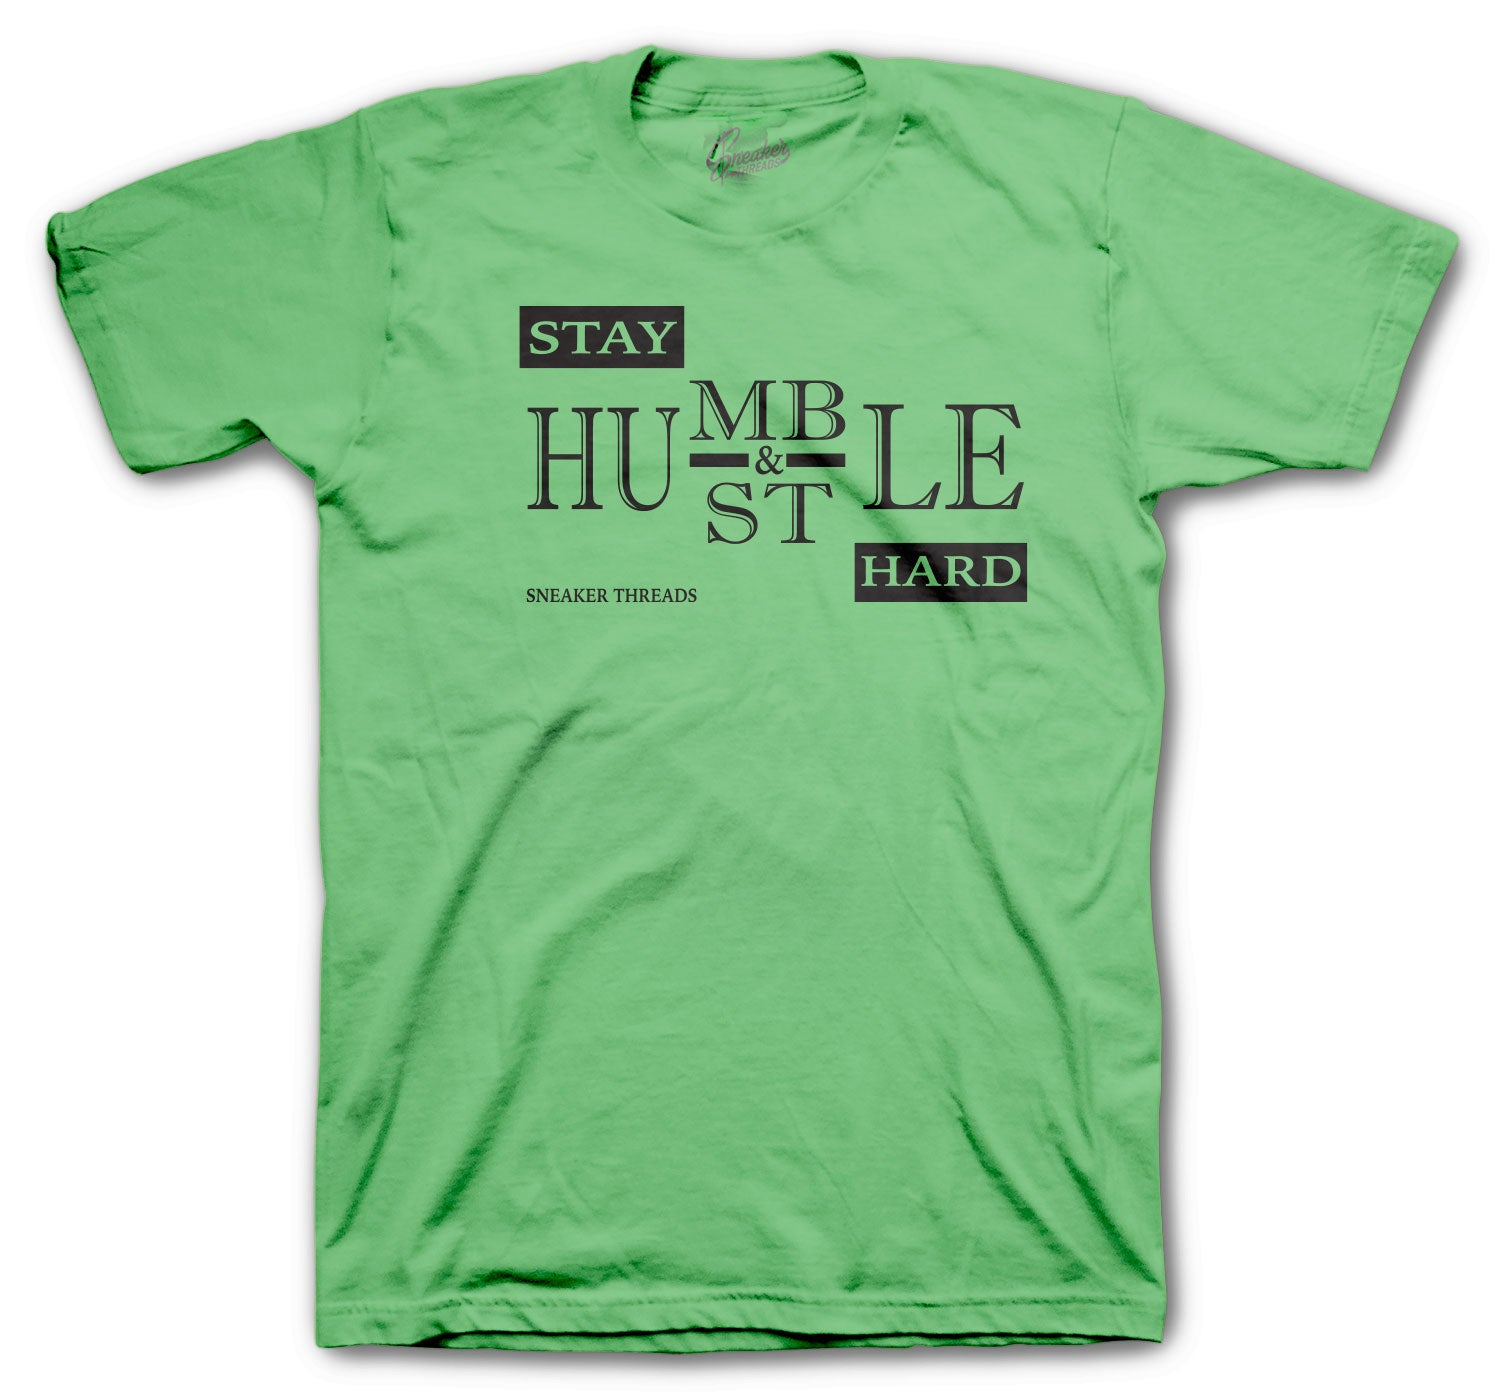 Jordan 1 Zen Green Humble Shirt